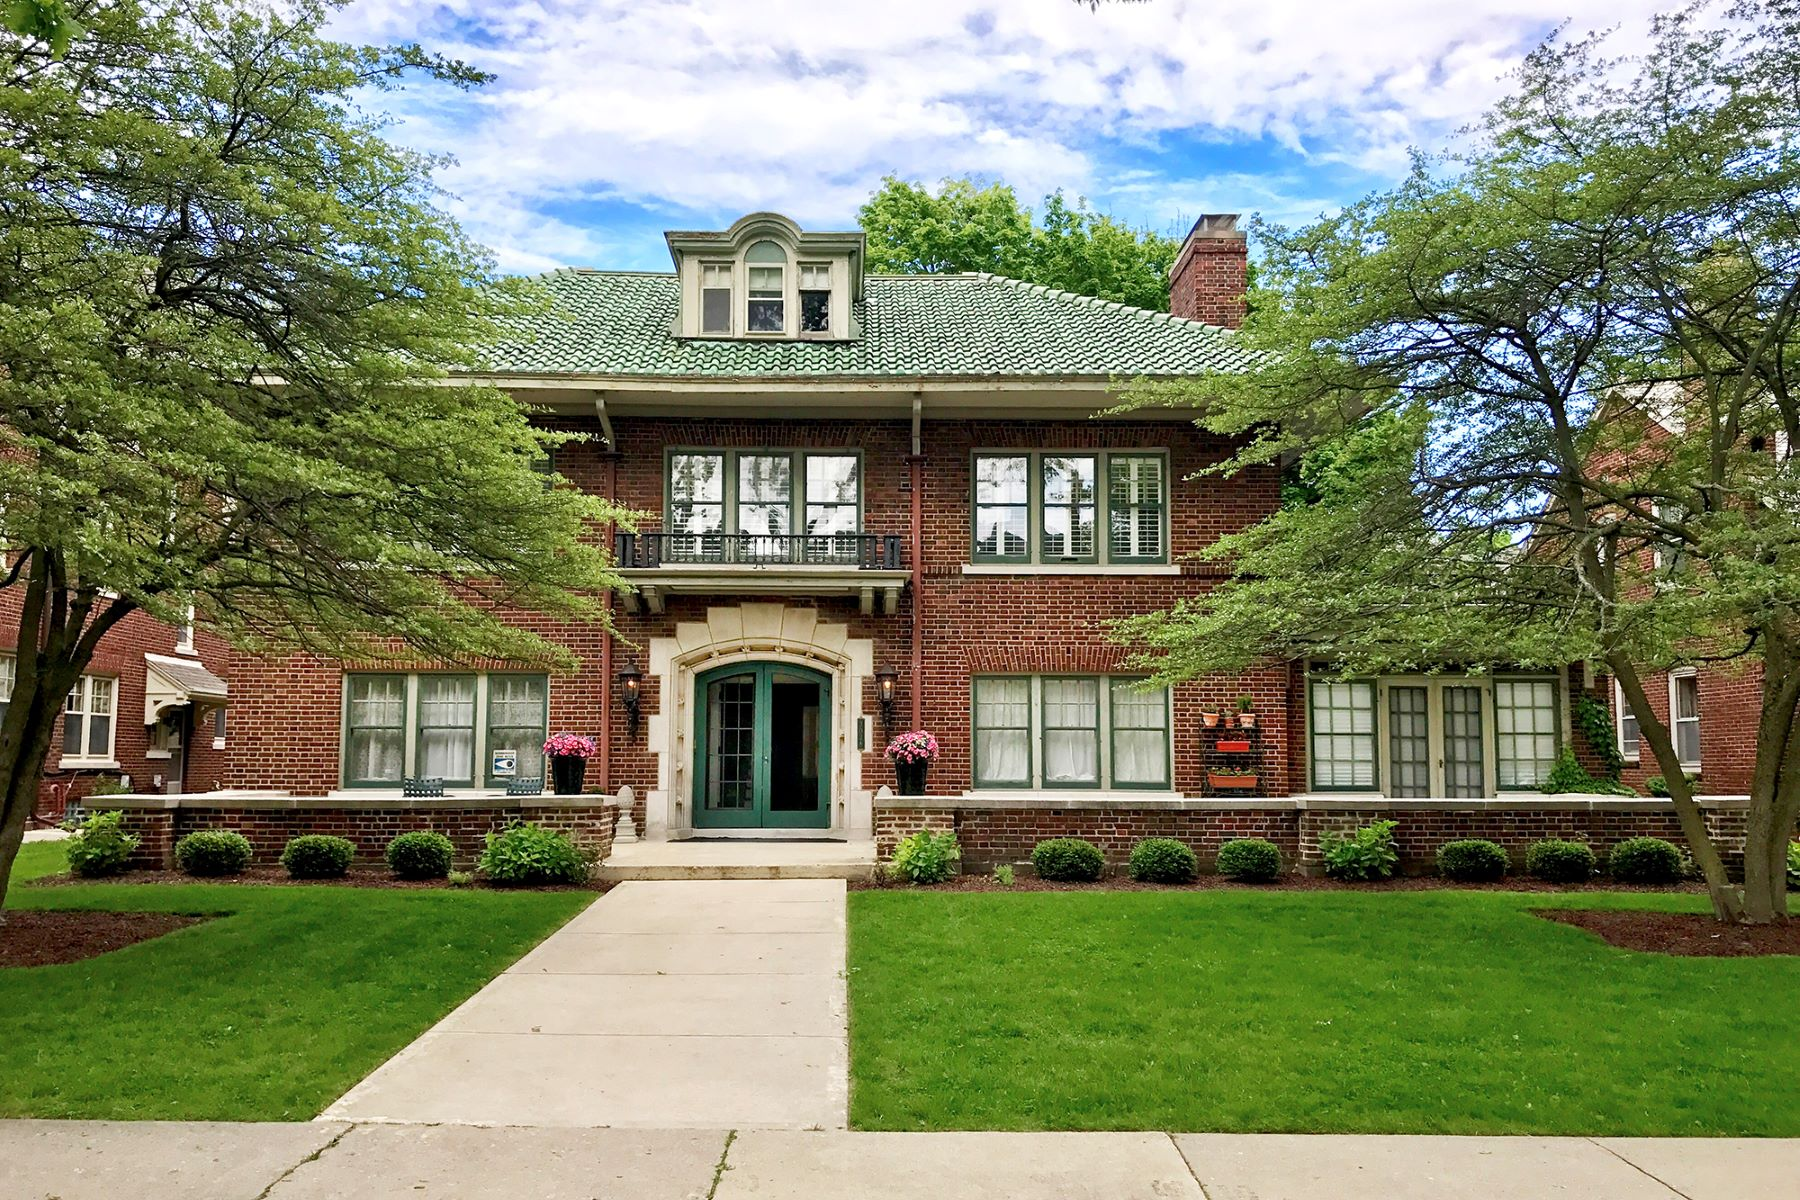 Single Family Home for Sale at Gracious East Side Colonial 3038 N. Shepard Avenue Milwaukee, Wisconsin 53211 United States